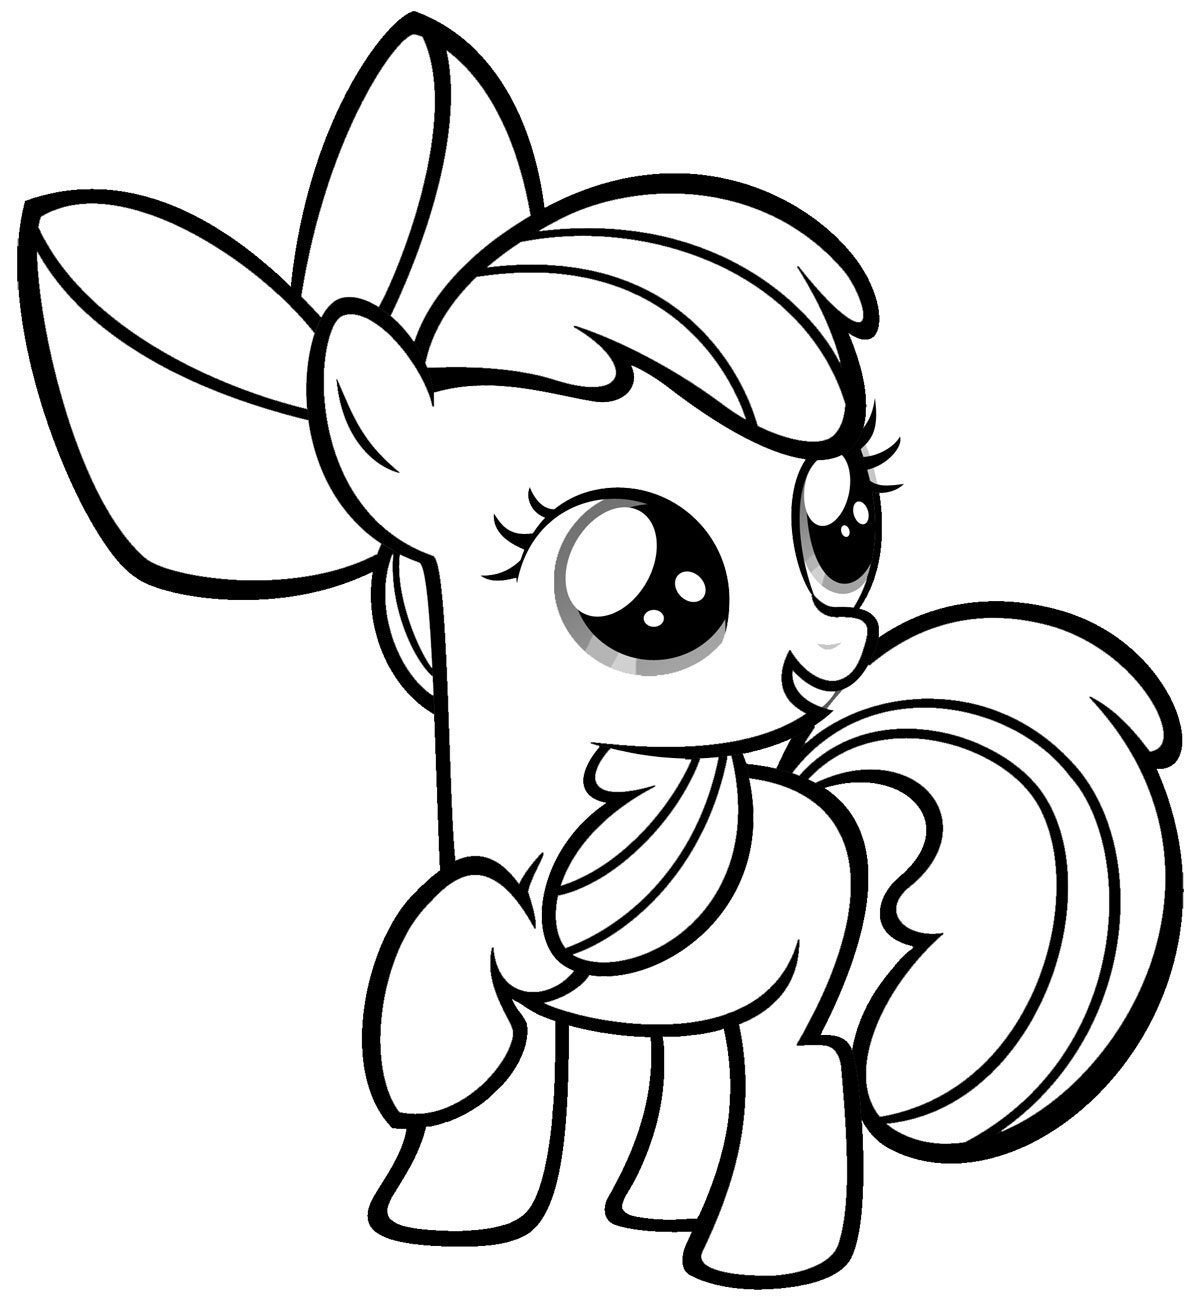 Free Printable My Little Pony Coloring Pages For Kids Coloring Kids Free Printable Coloring Pages